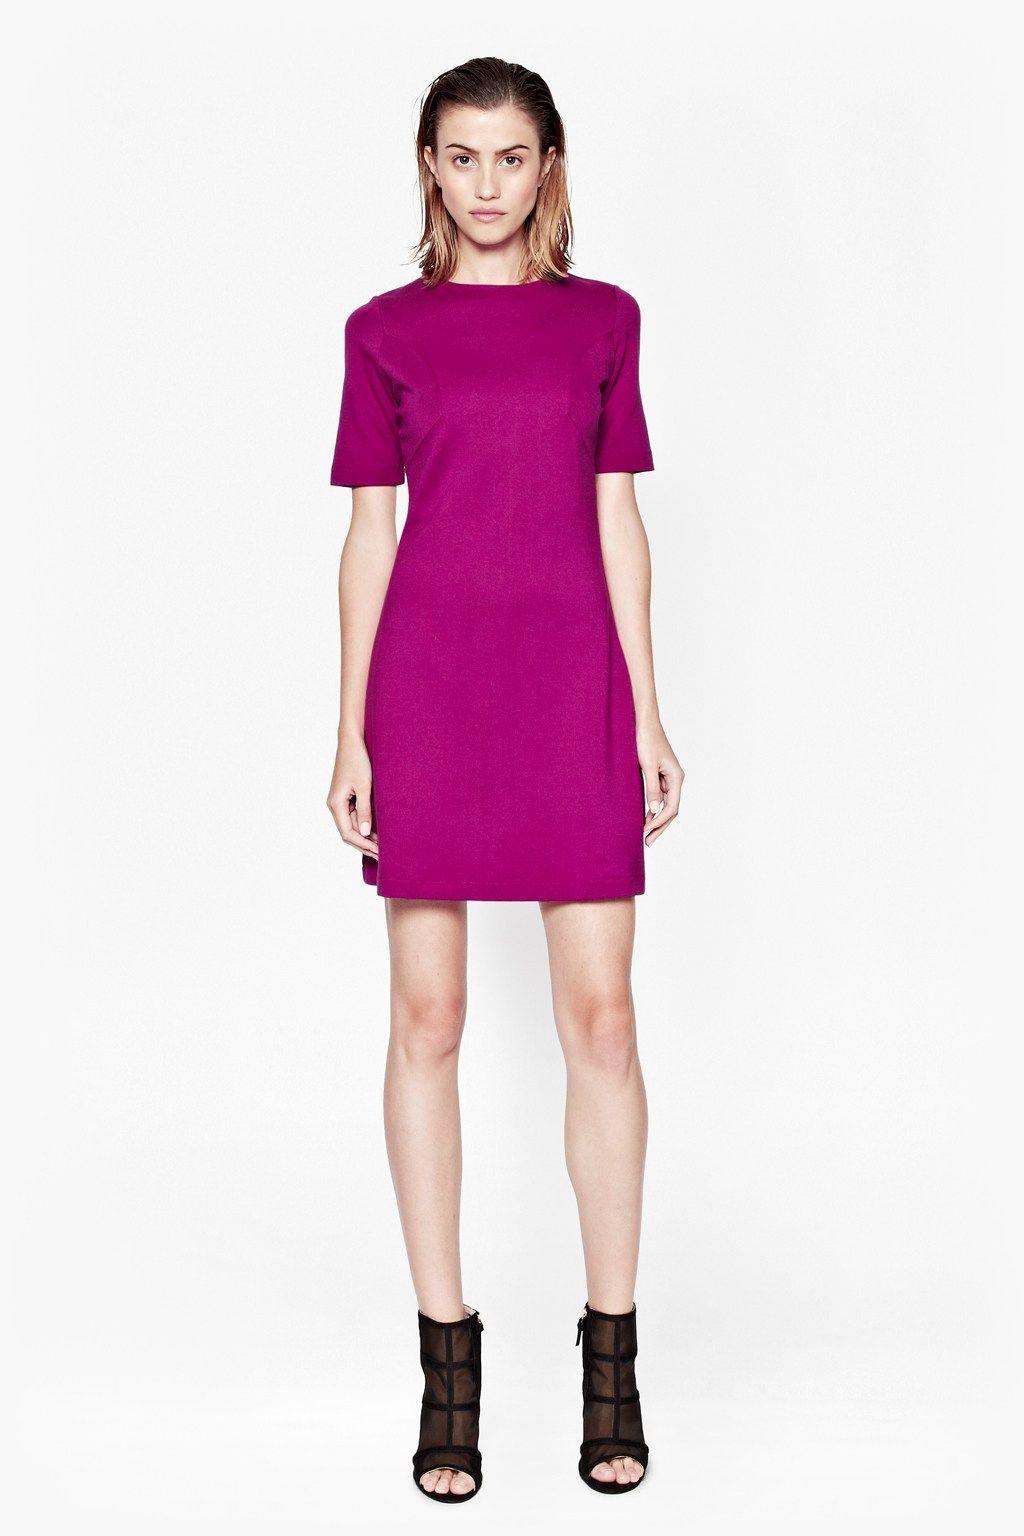 Marie Stretch Dress - Dresses - French Connection | Other designers ...